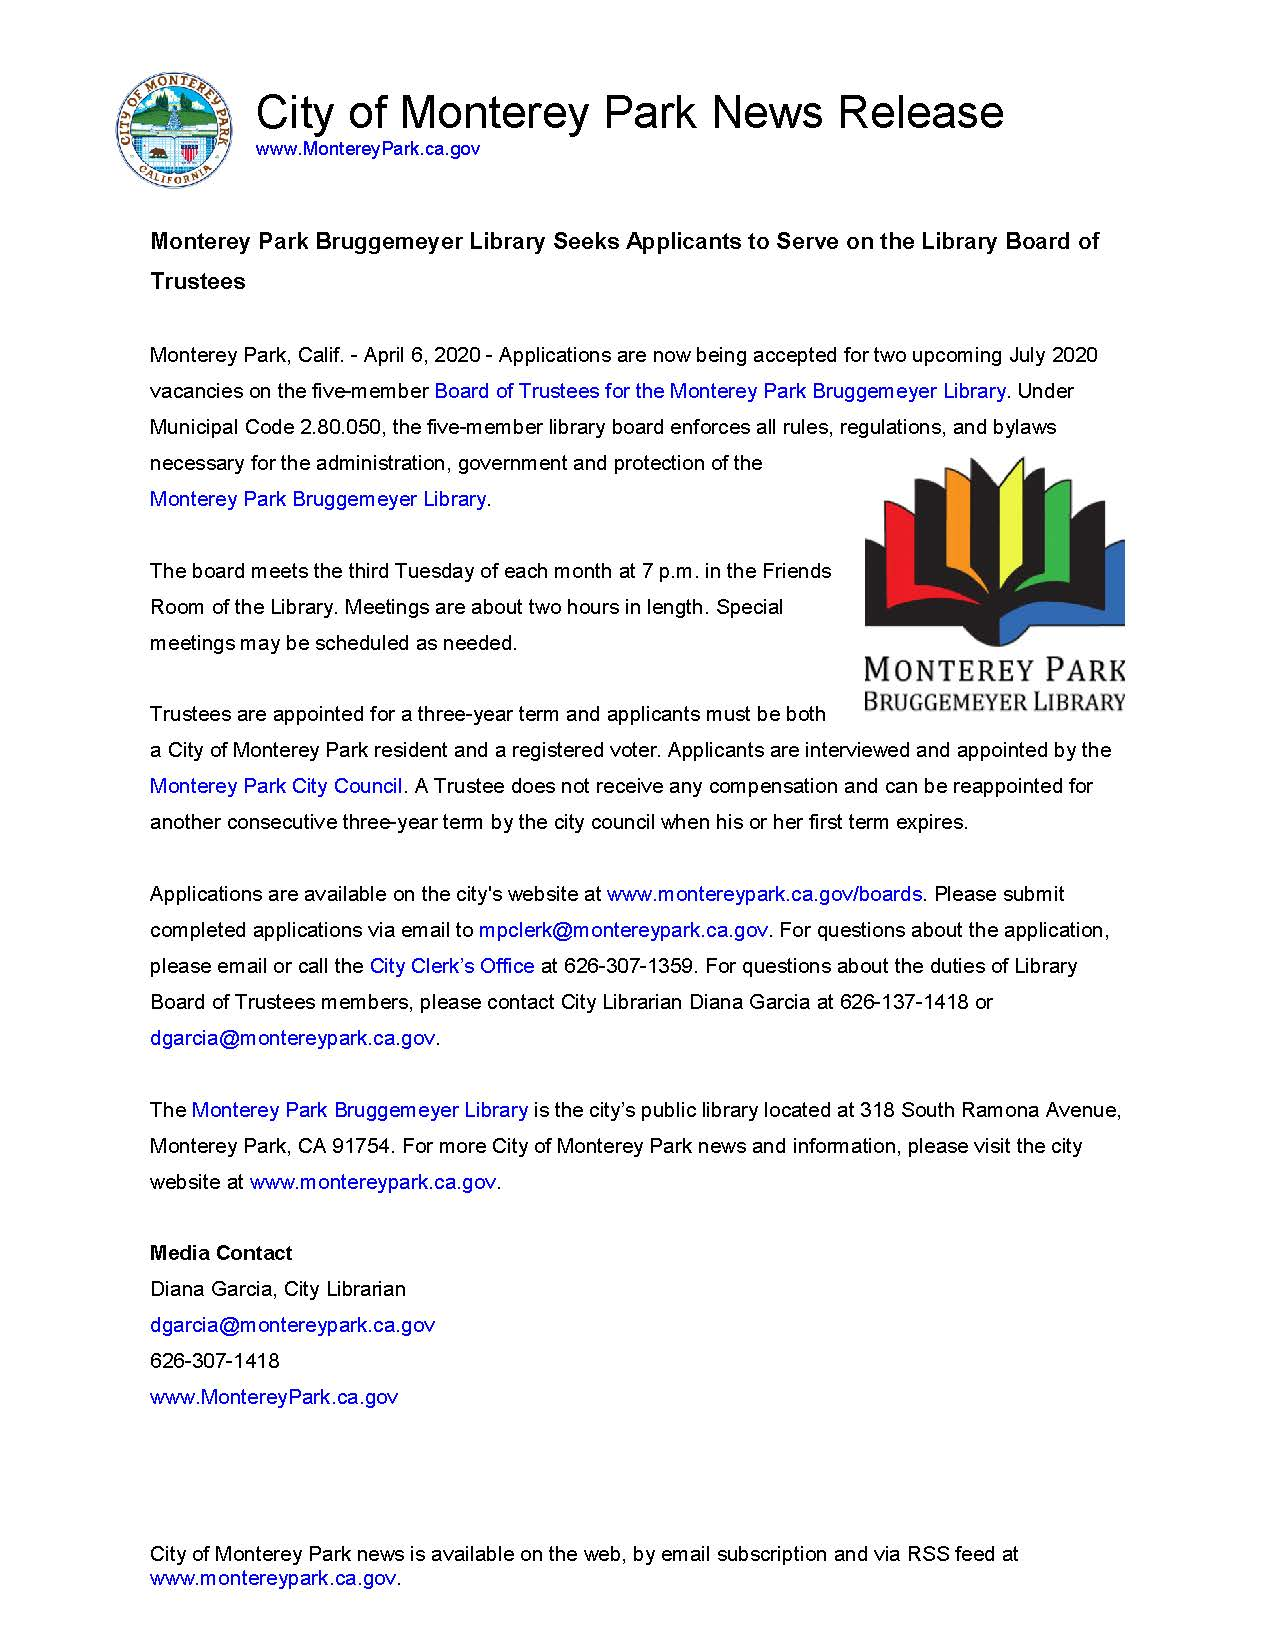 MPK News Release-MPK Bruggemeyer Library Seeks Applicants to Serve on the Library Board of Trustees